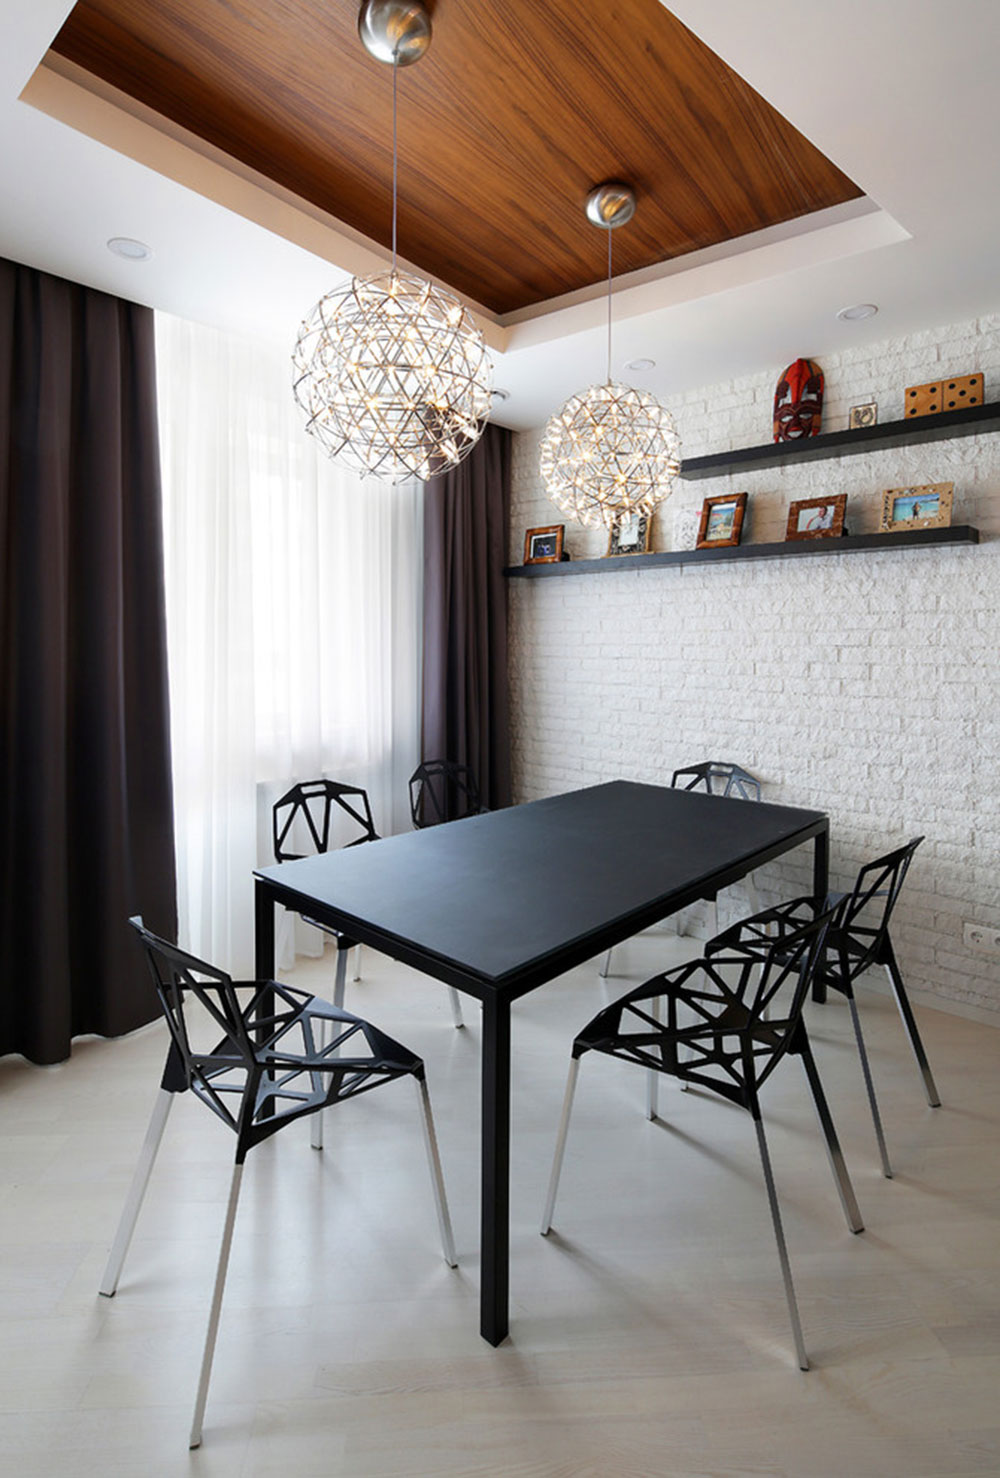 White-Bricks-Wall-Ideas-for-the-whole-house10 White-Bricks-Wall-Ideas for the whole house